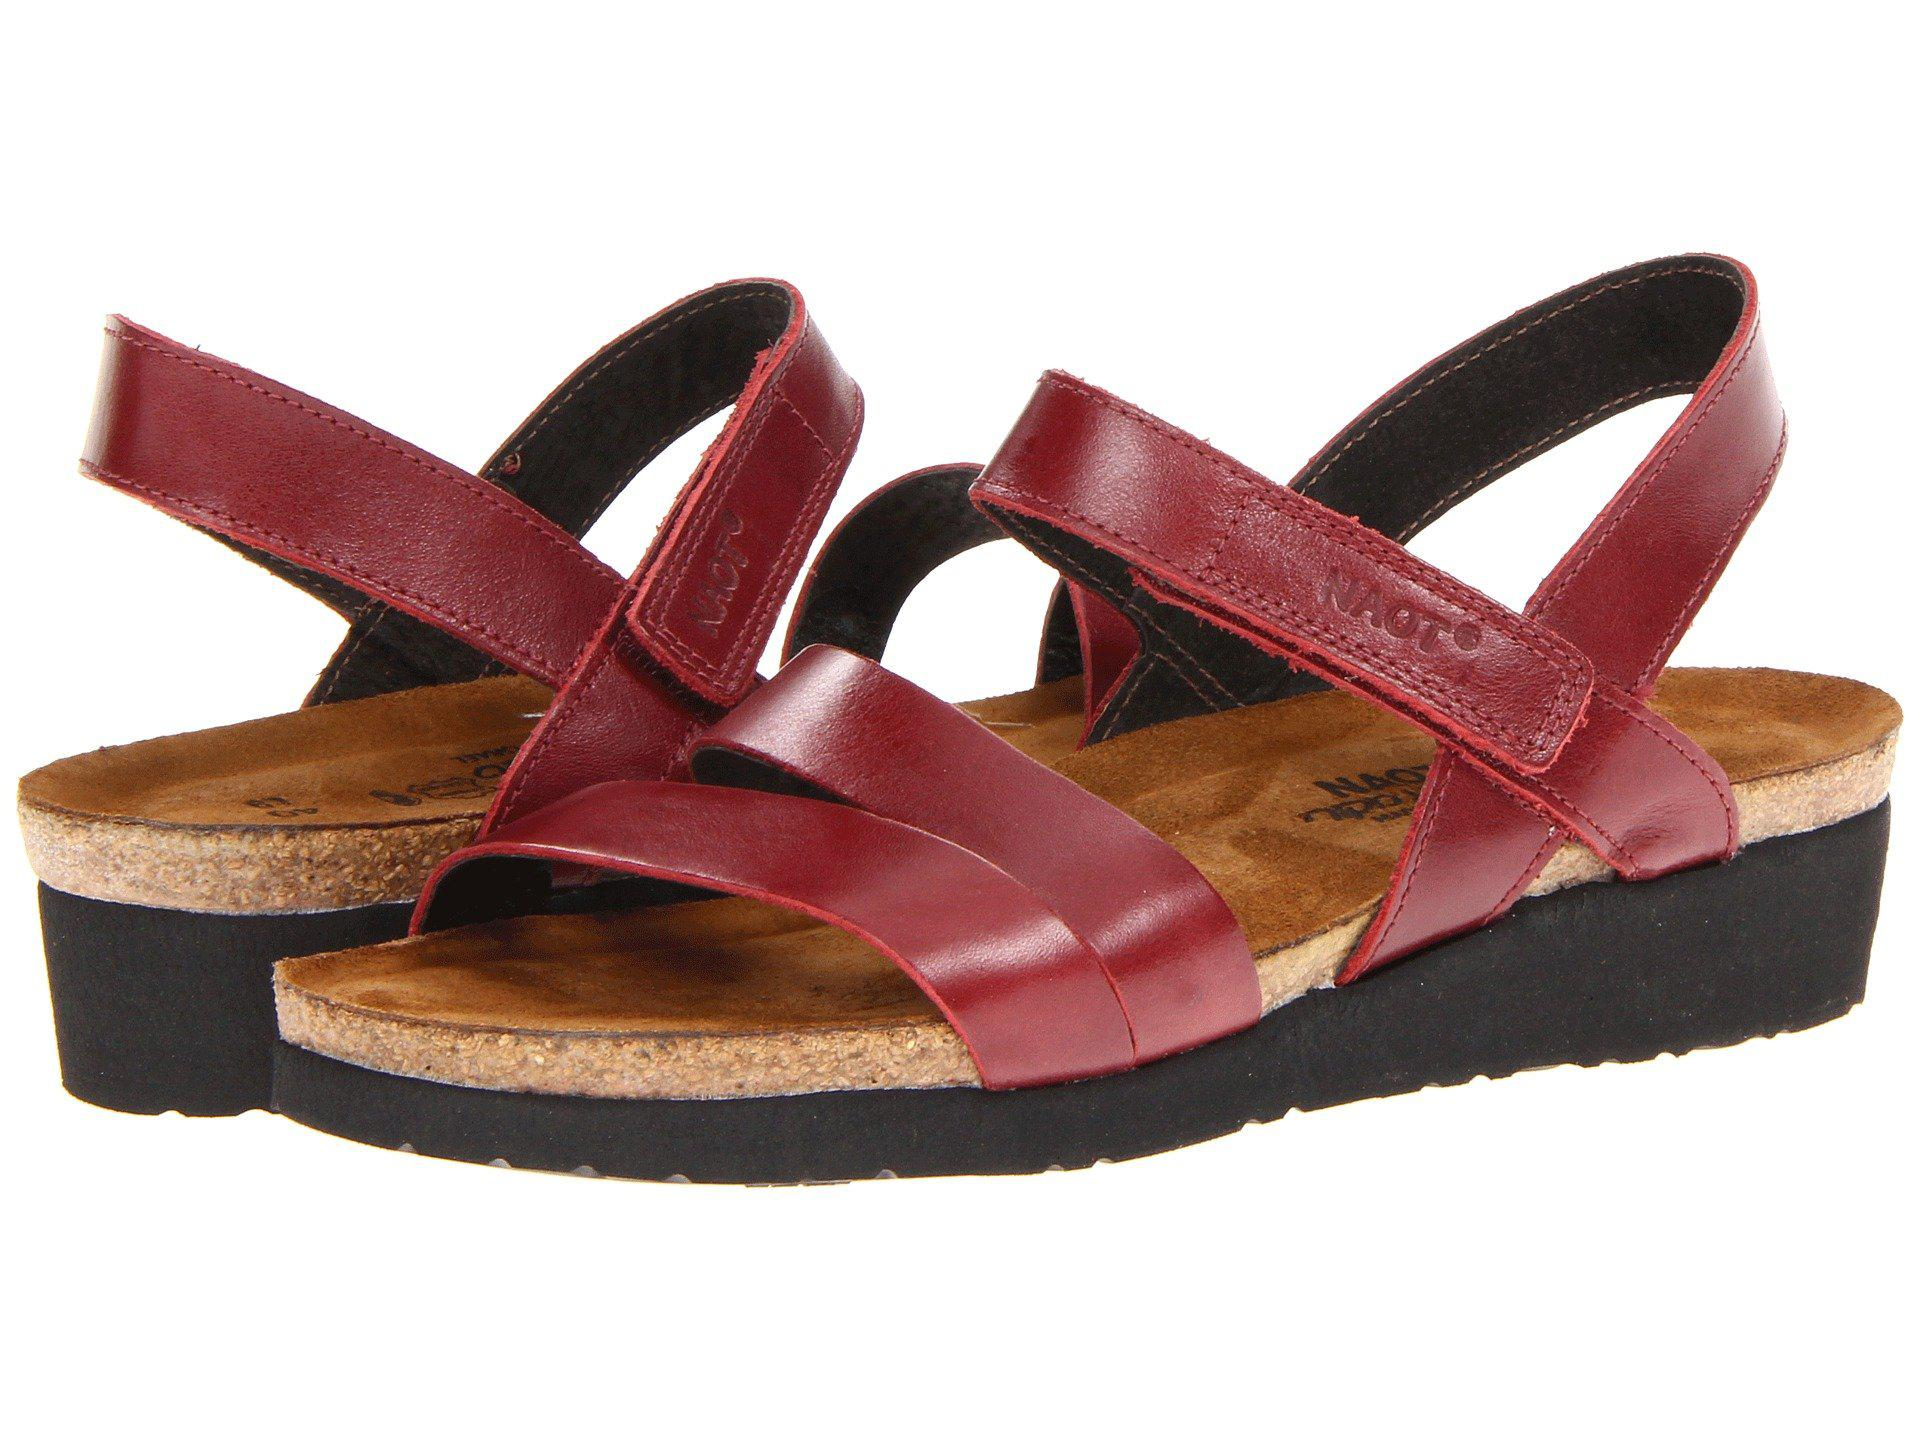 bcebf04ca134 Lyst - Naot Kayla (sea Green Leather) Women s Sandals in Red